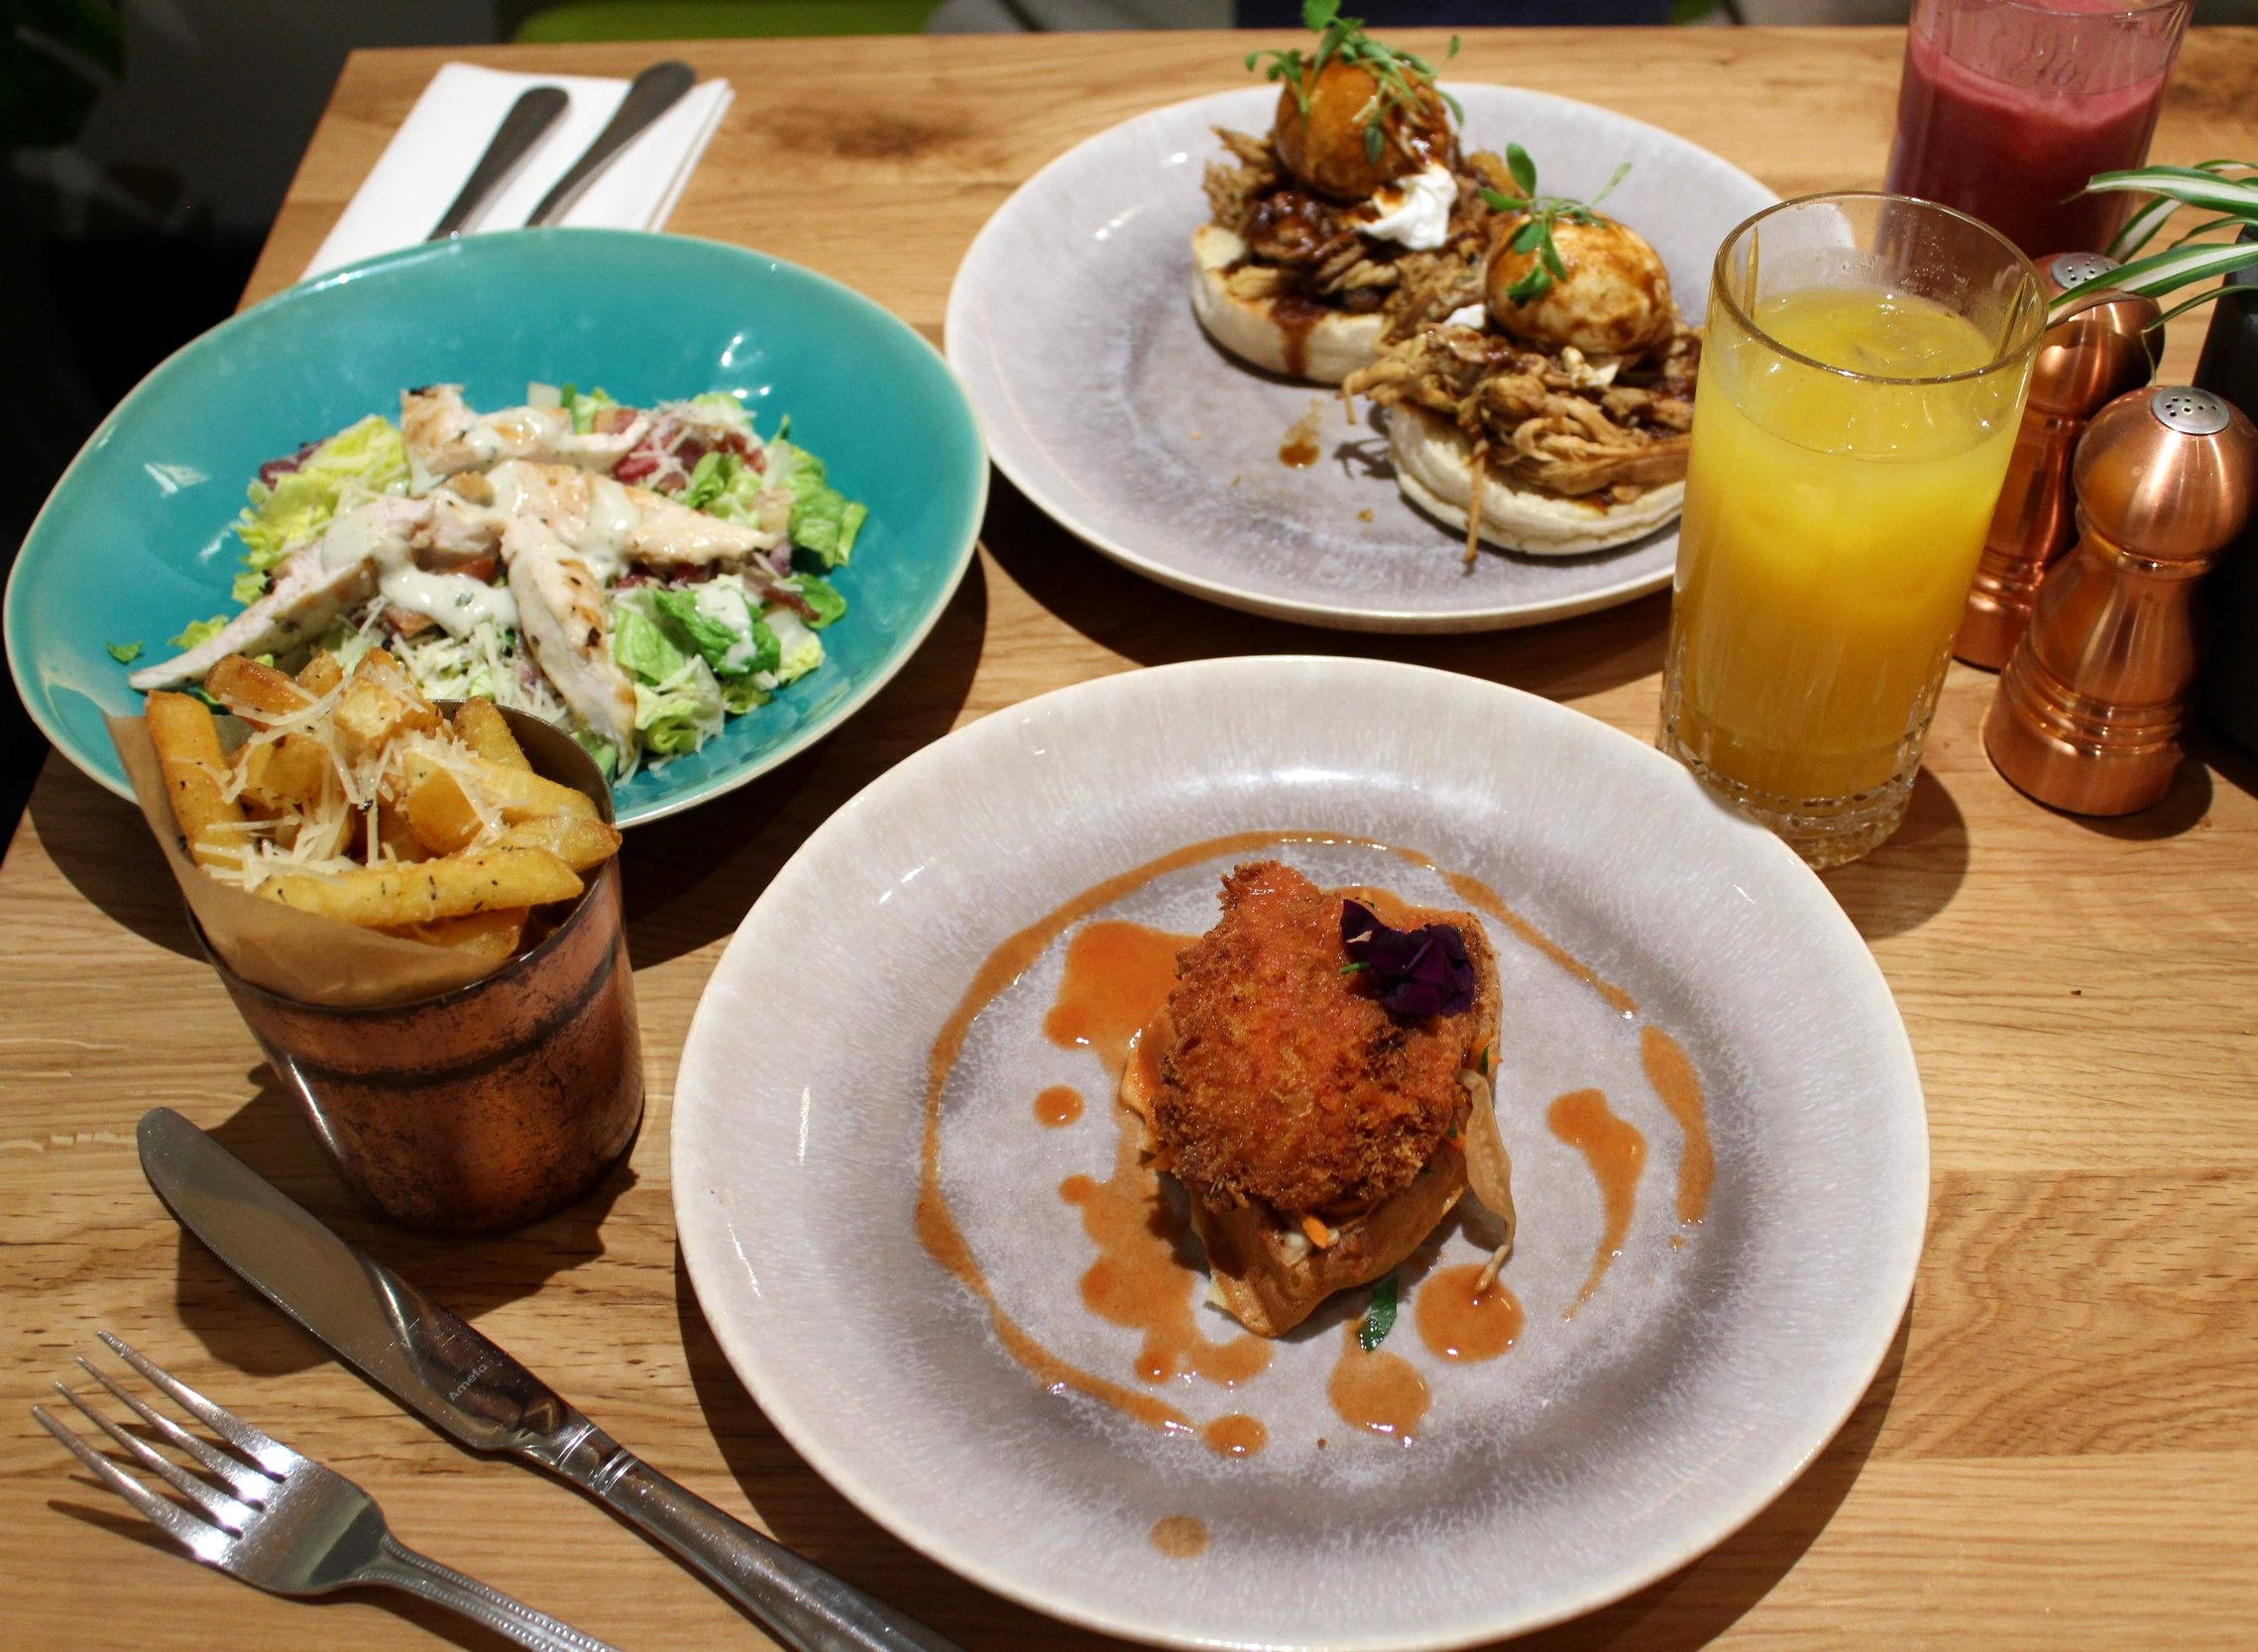 Motley London brunch review